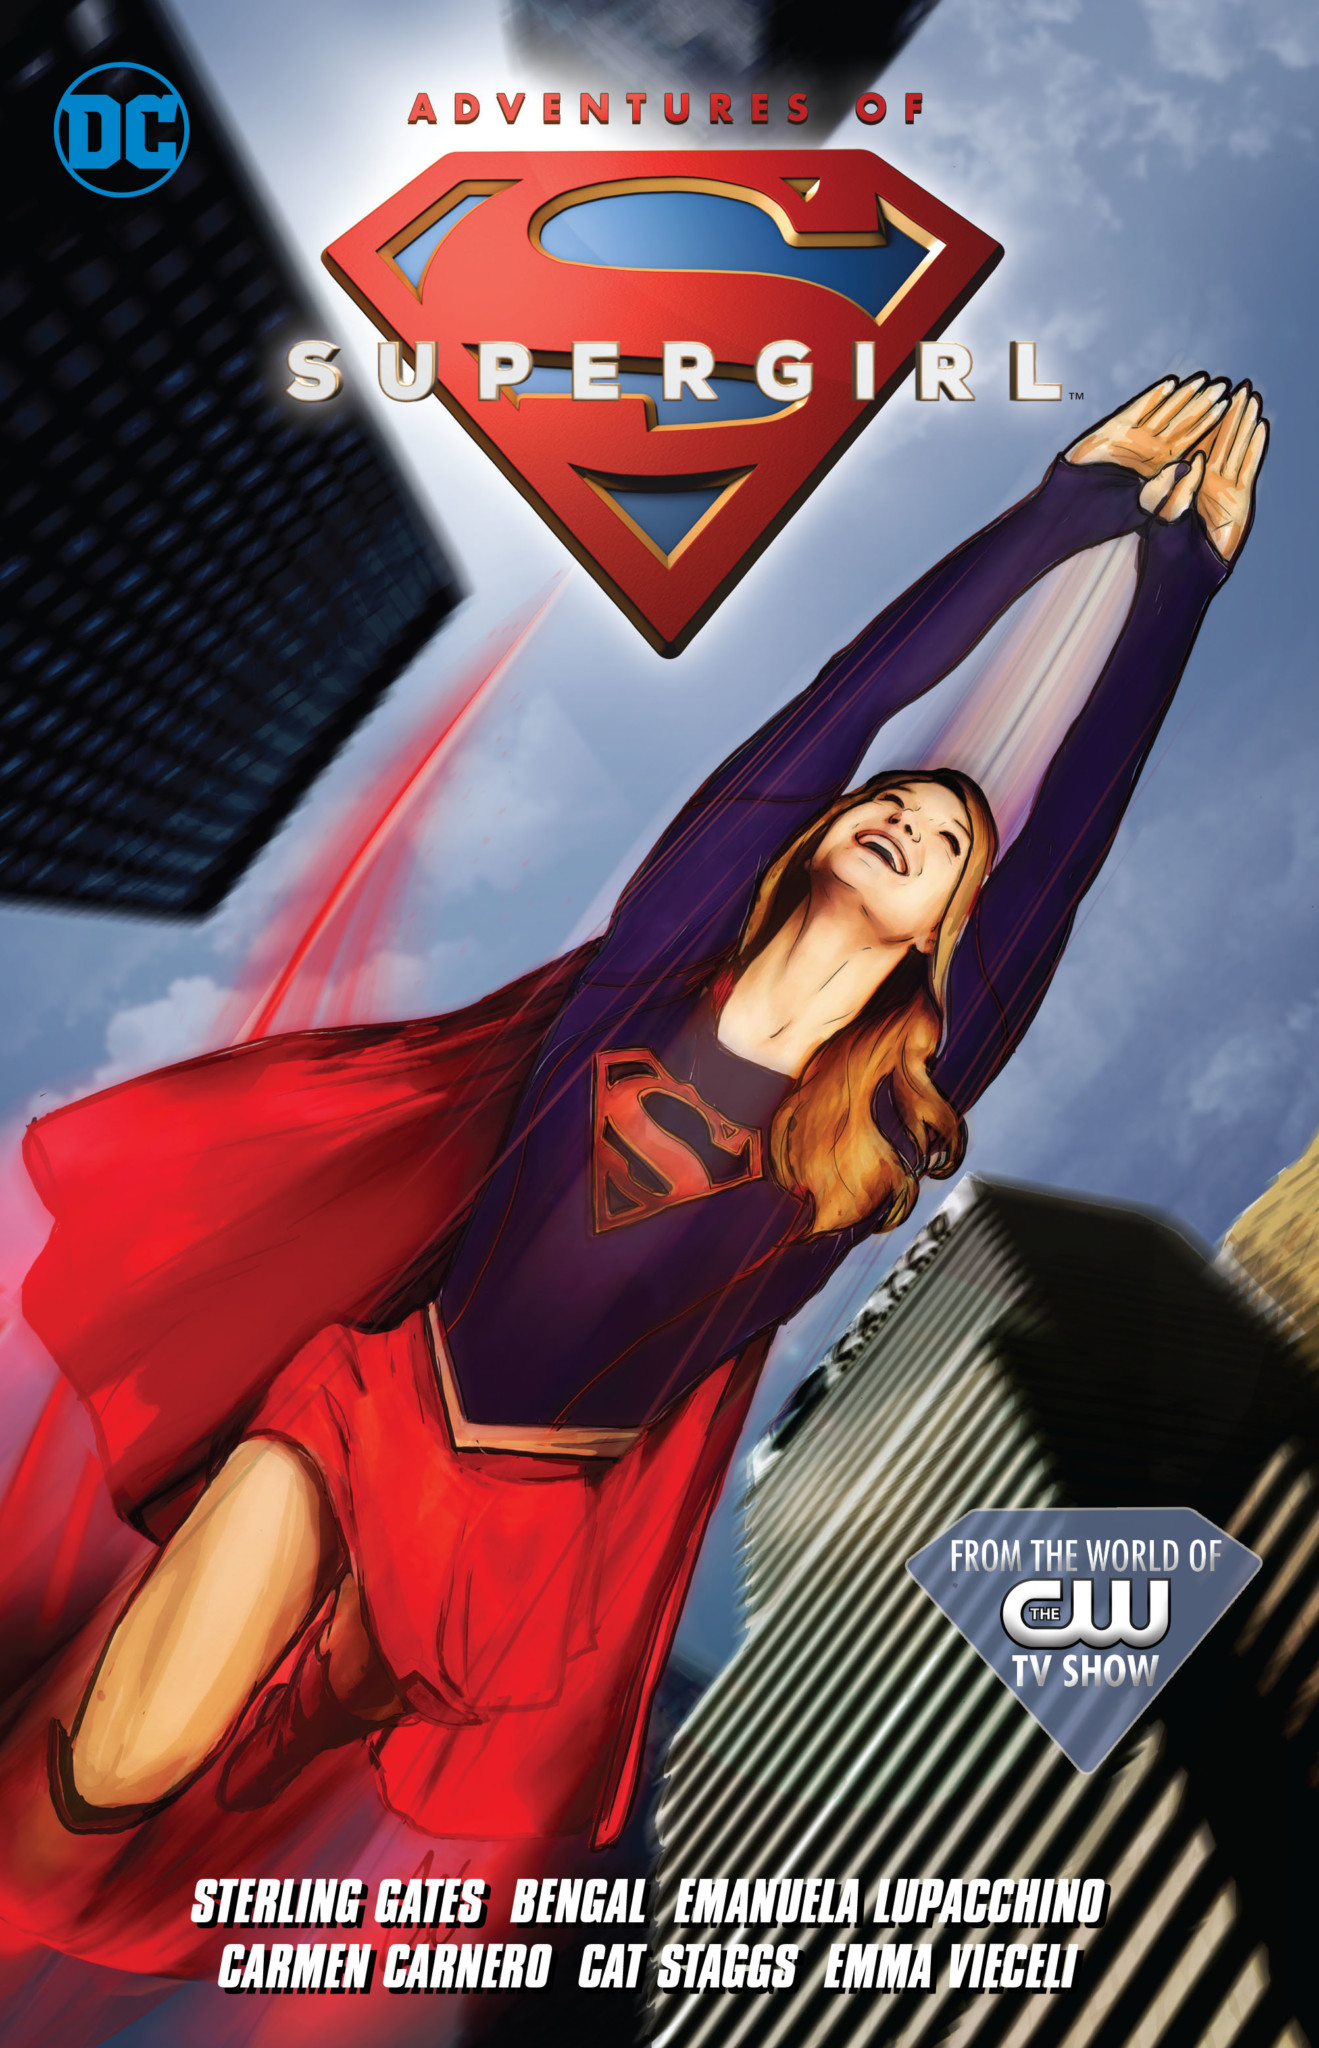 Adventures of Supergirl graphic novel cover from DC Comics